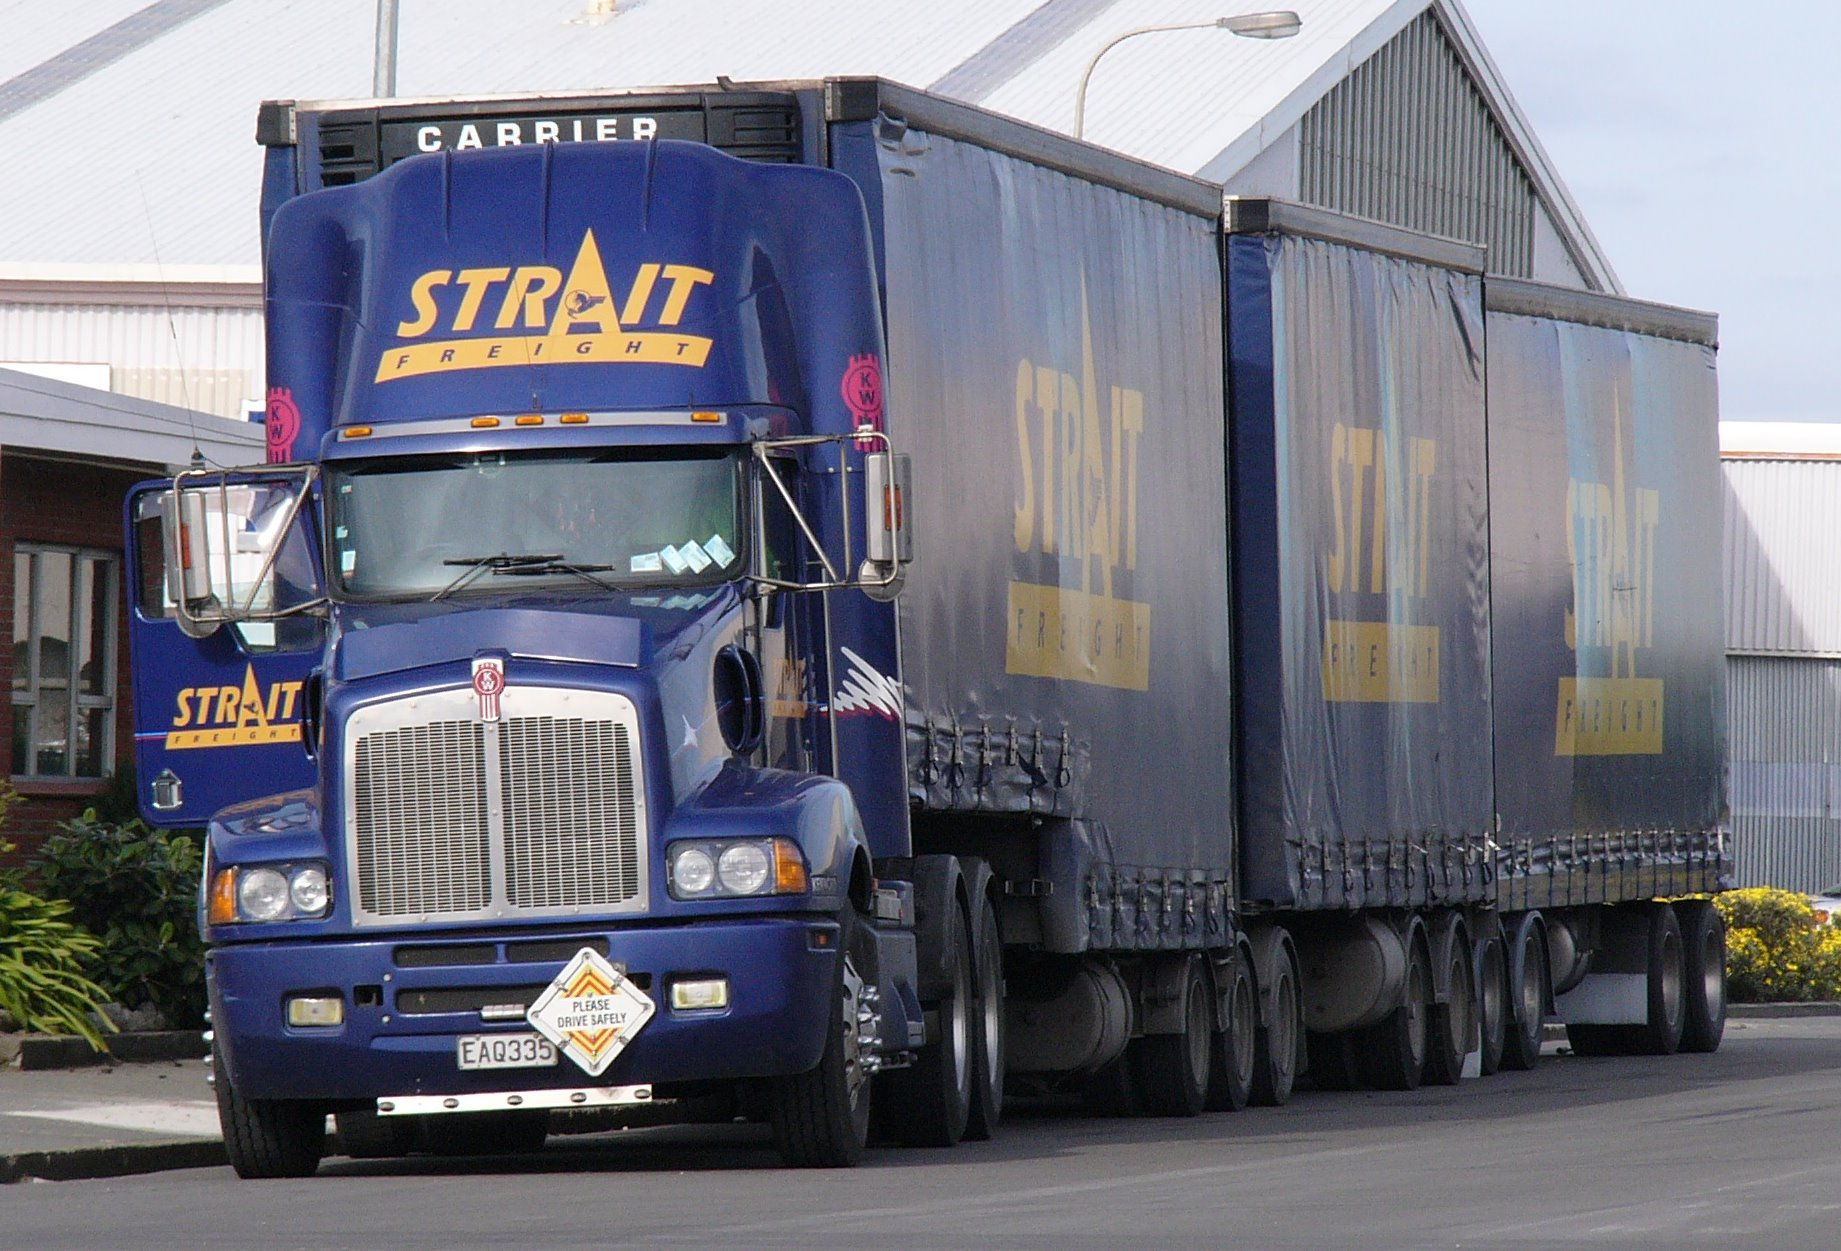 1000 images about road trains on pinterest trucks for Ikea ship to new zealand